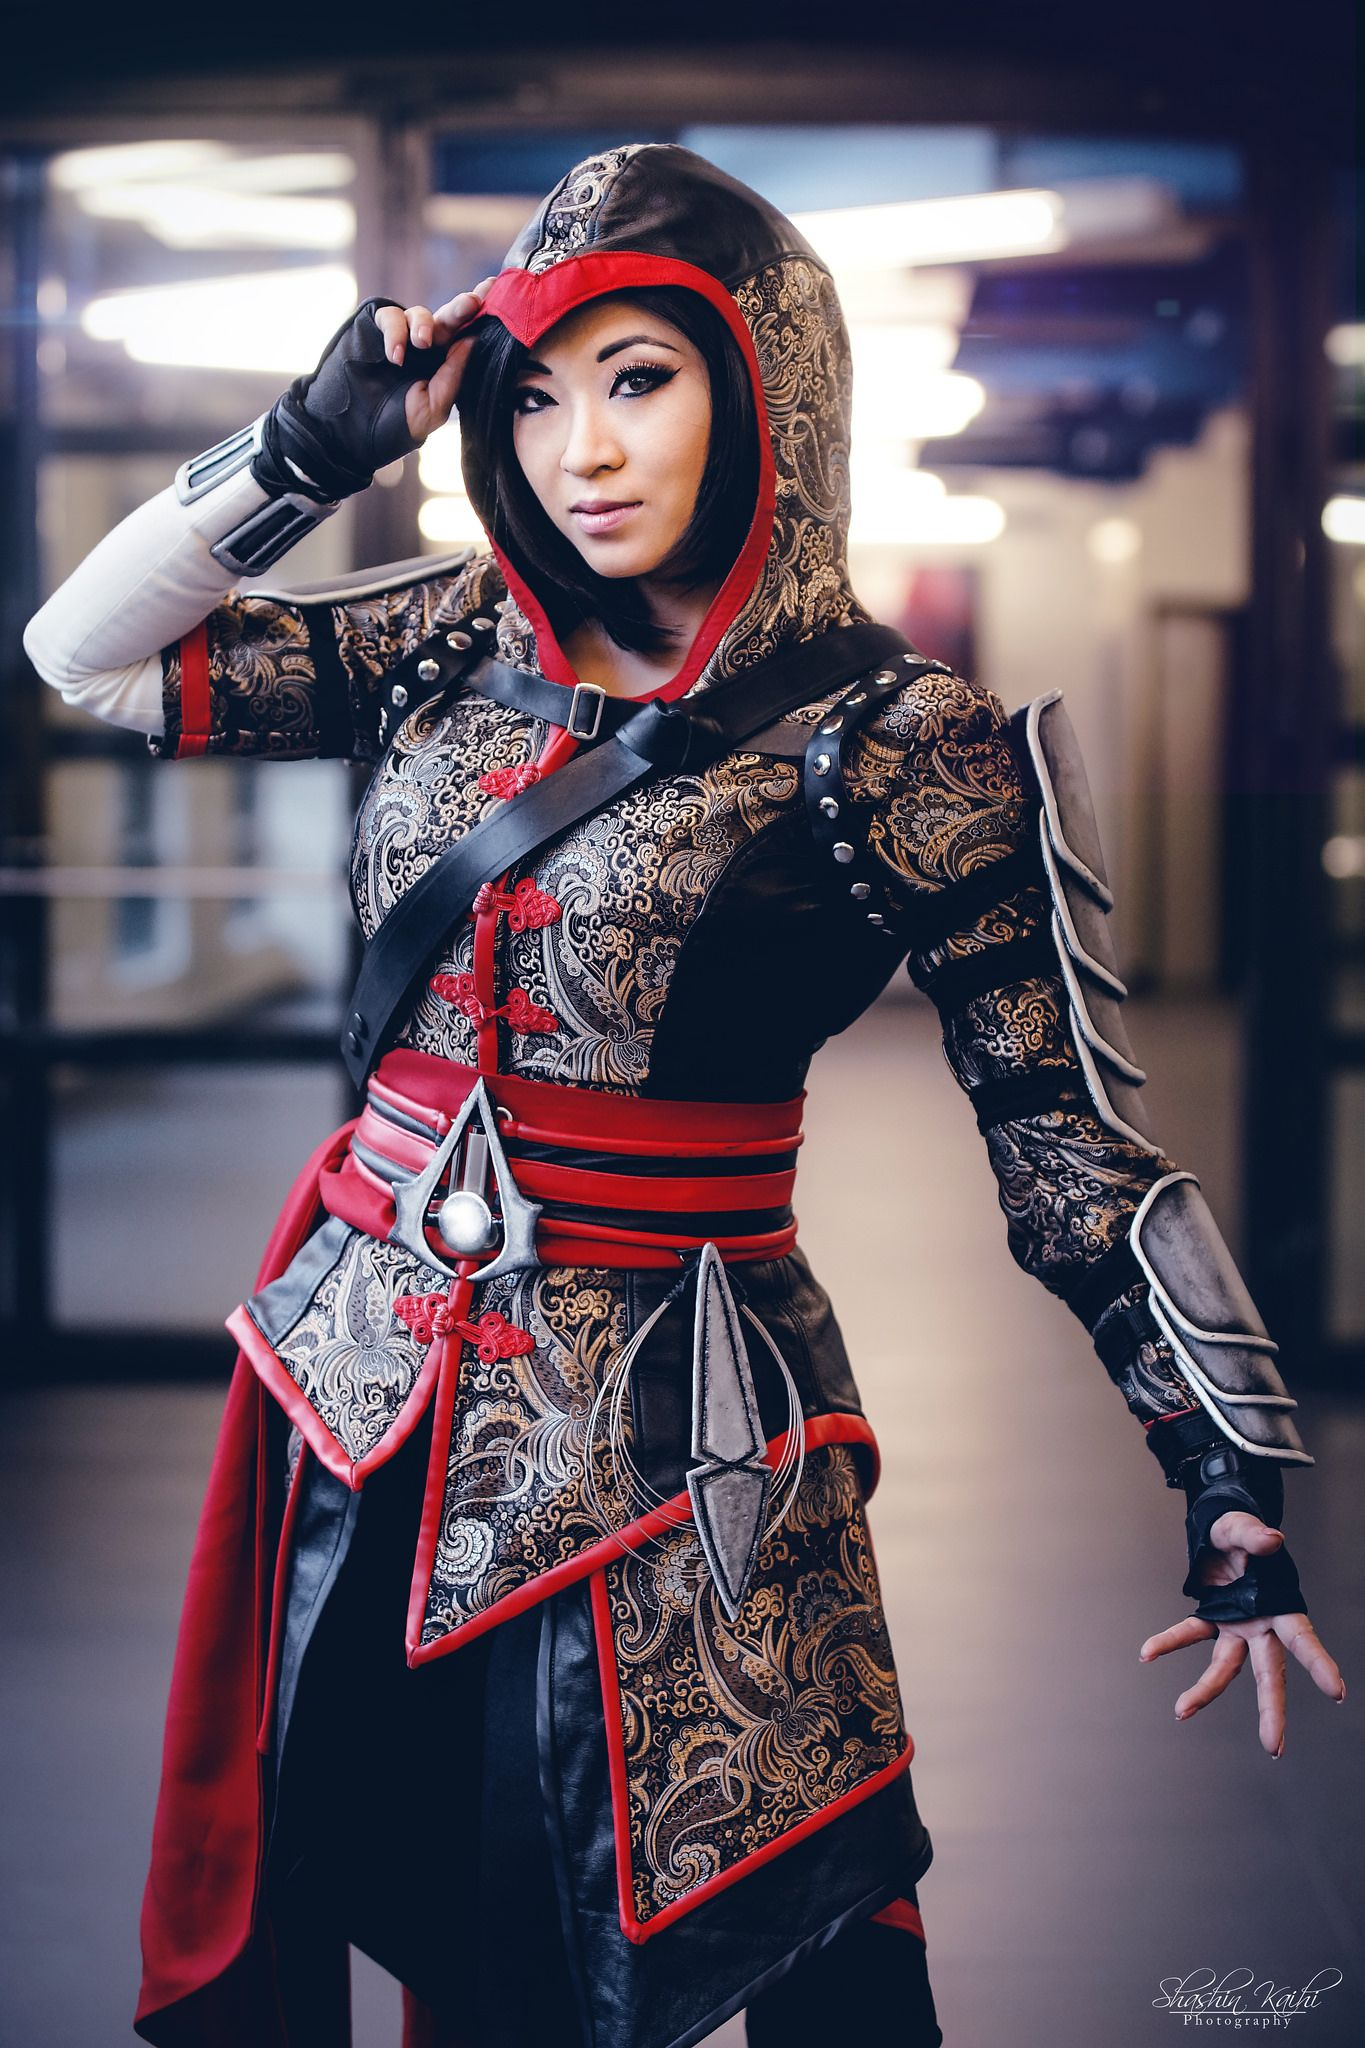 Yaya Han Shao Jun Assassin S Creed Chronicles China